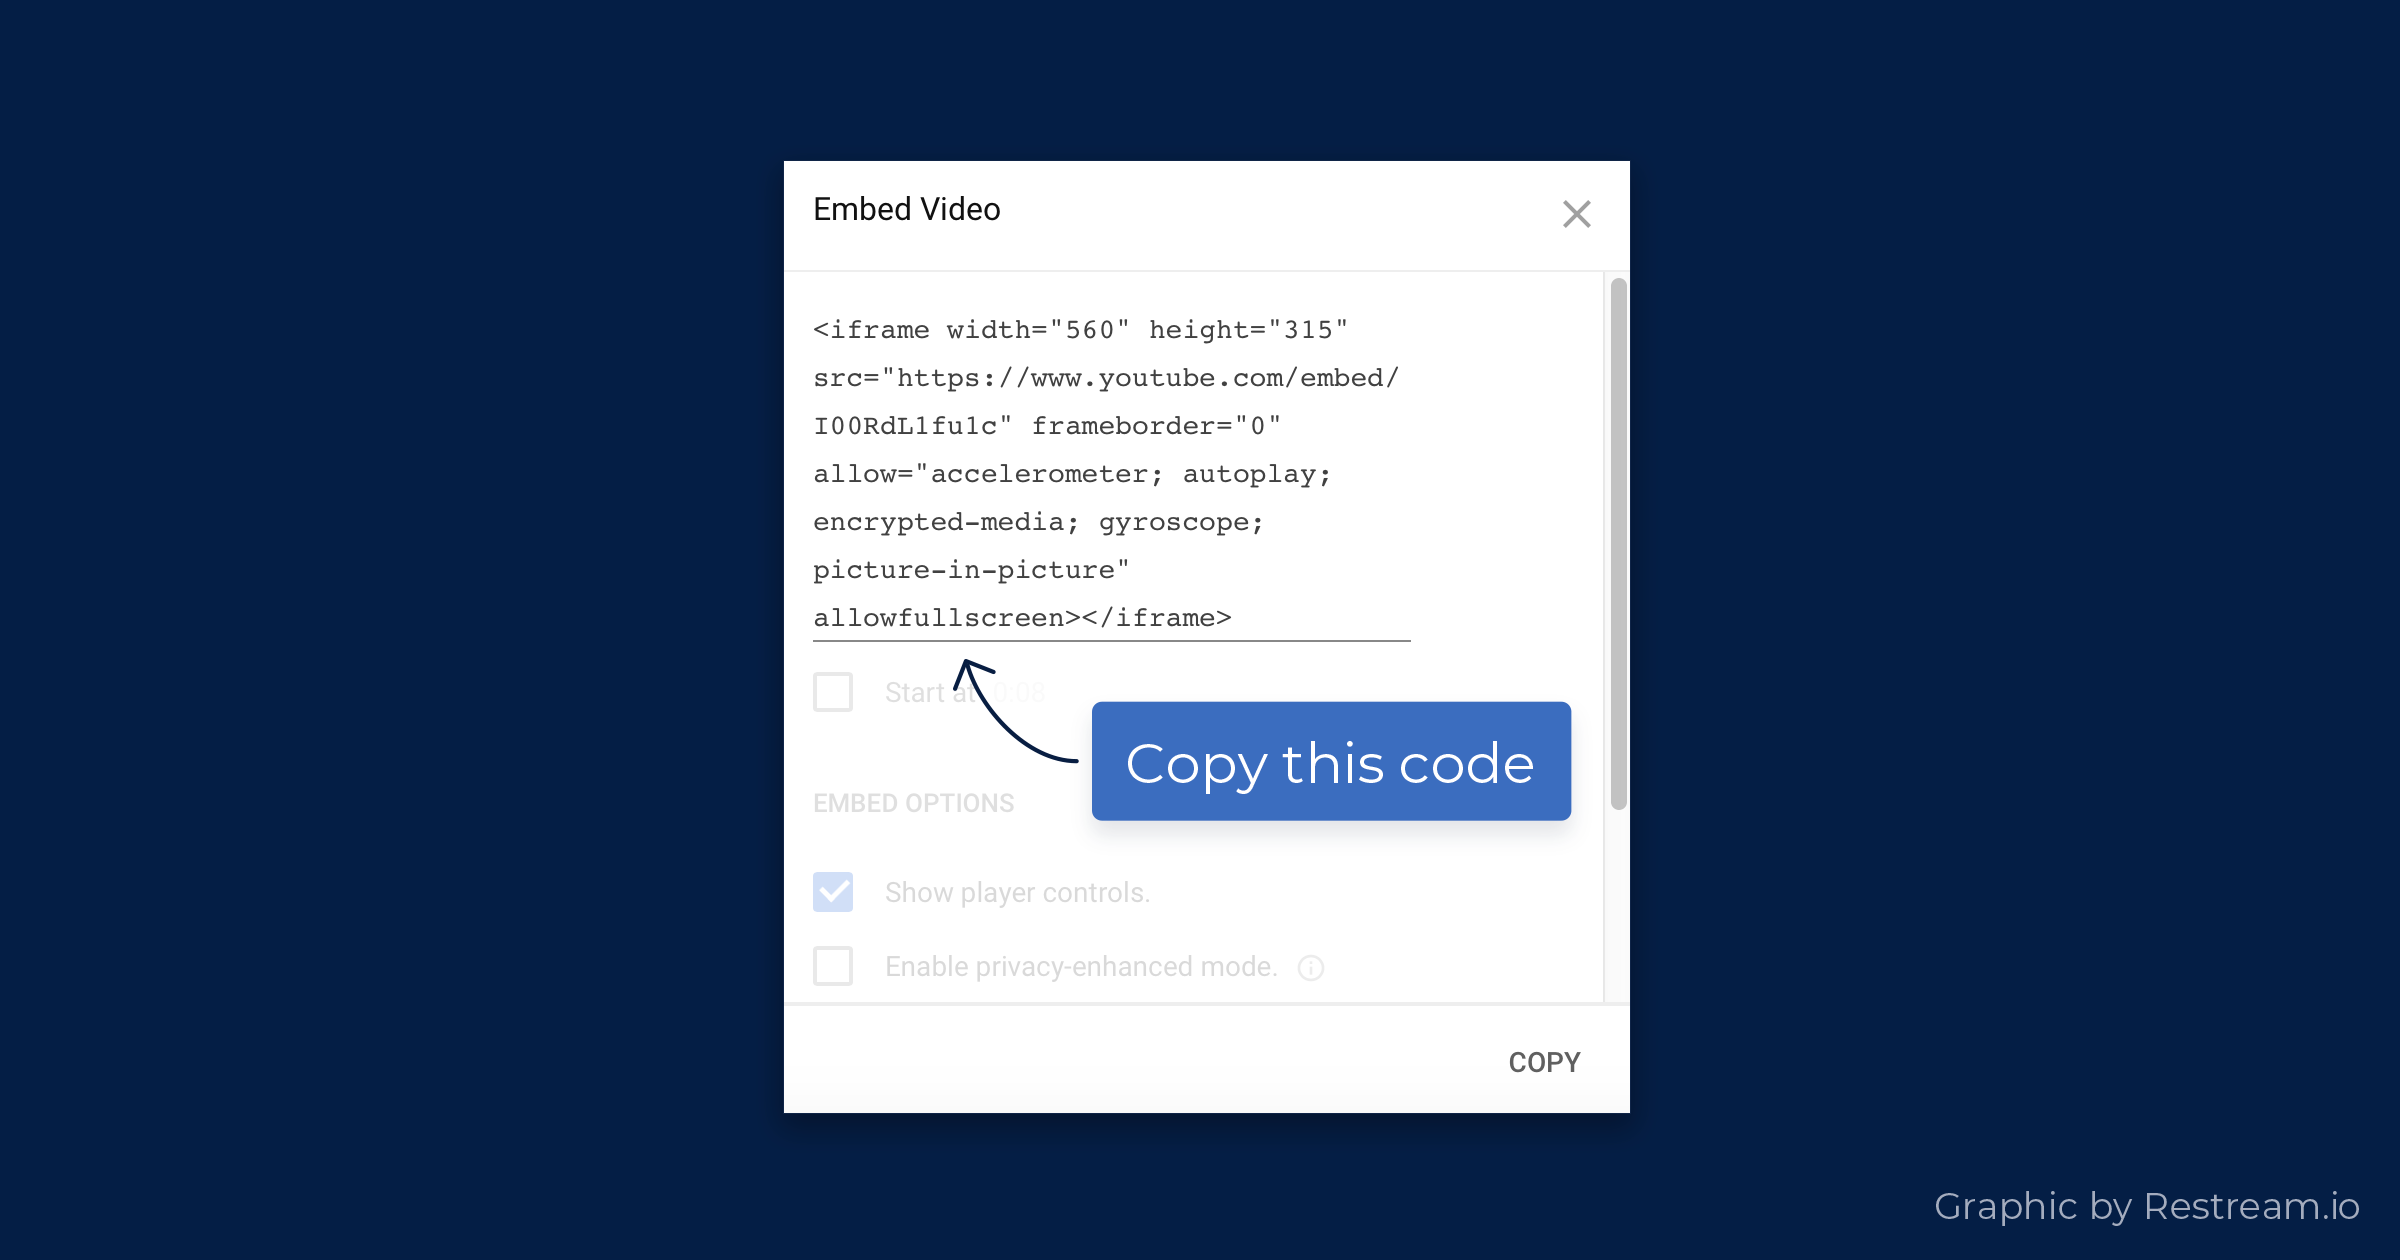 Copy this code